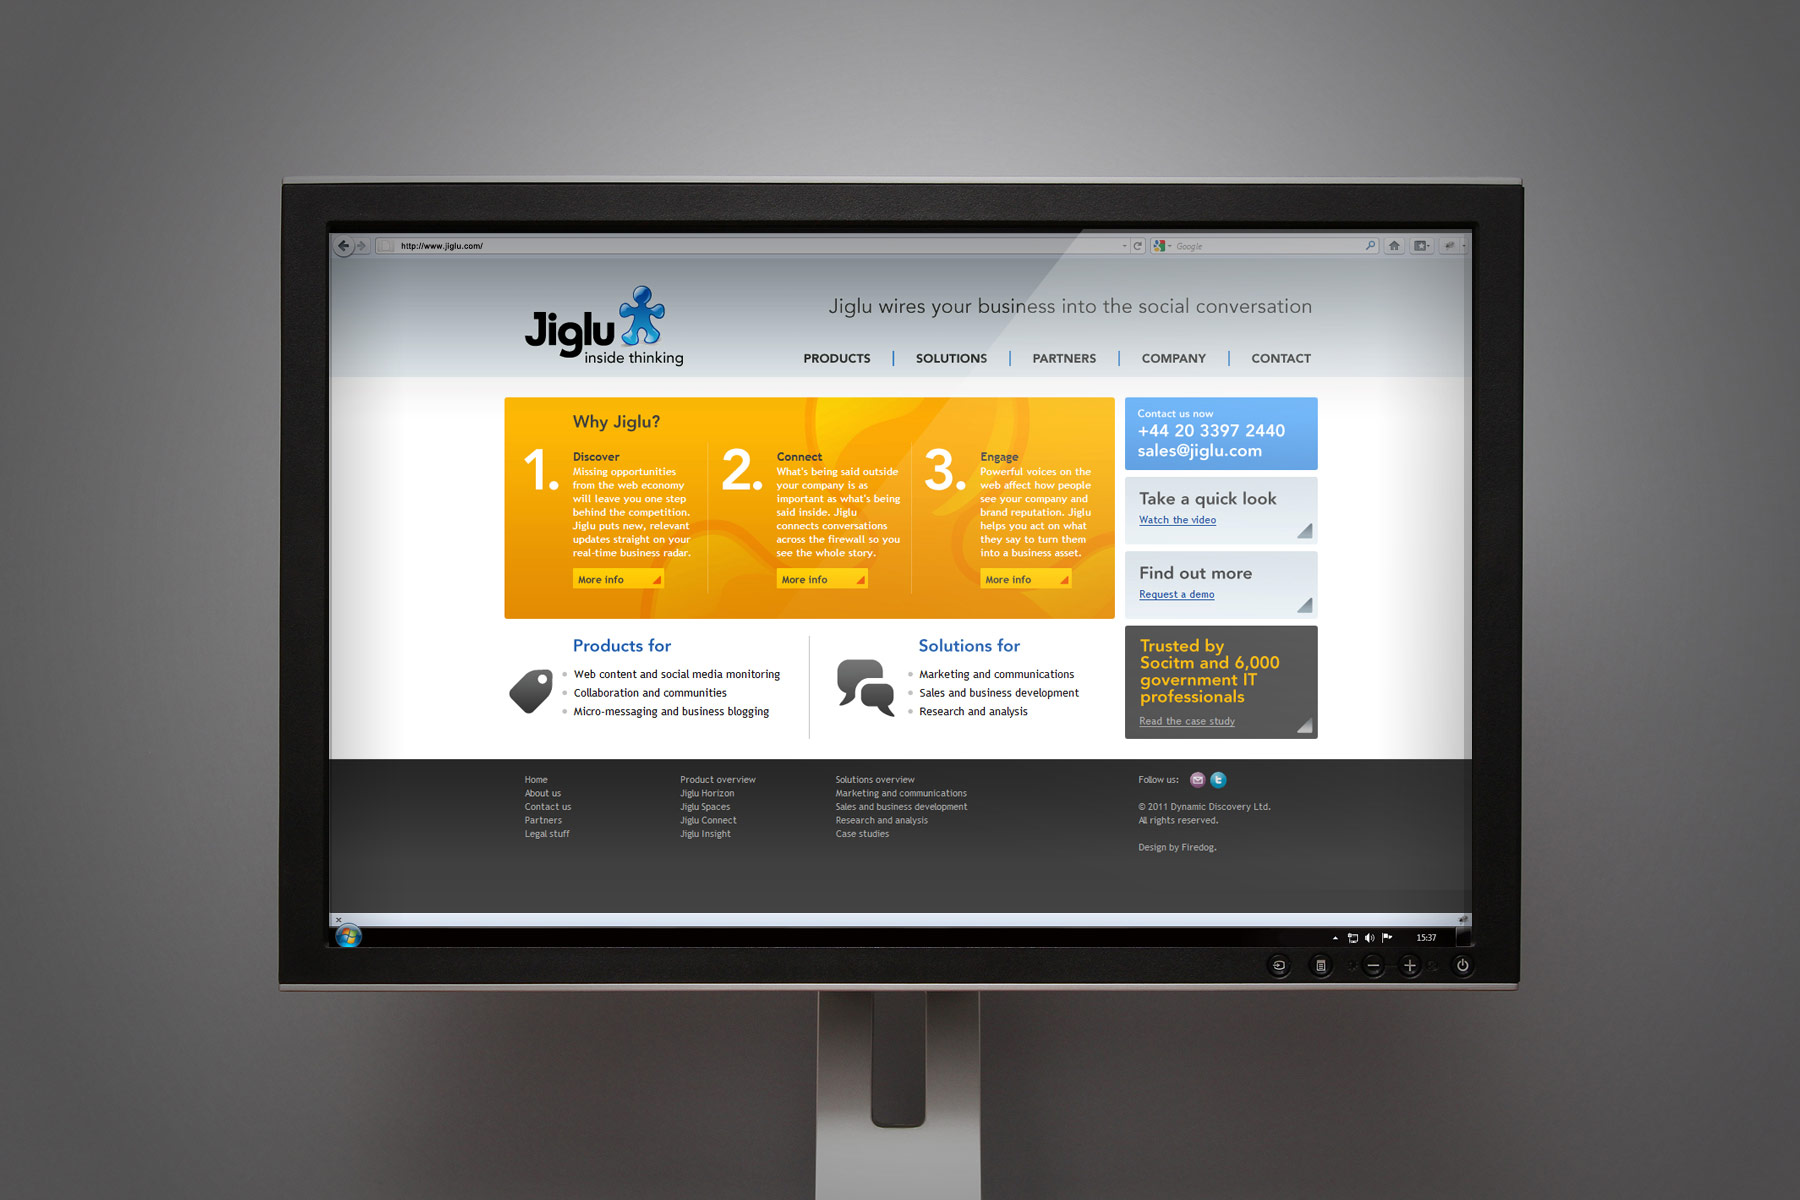 The brand applied harmoniously to the digital environment - complimented by our messaging and iconography toolkit.